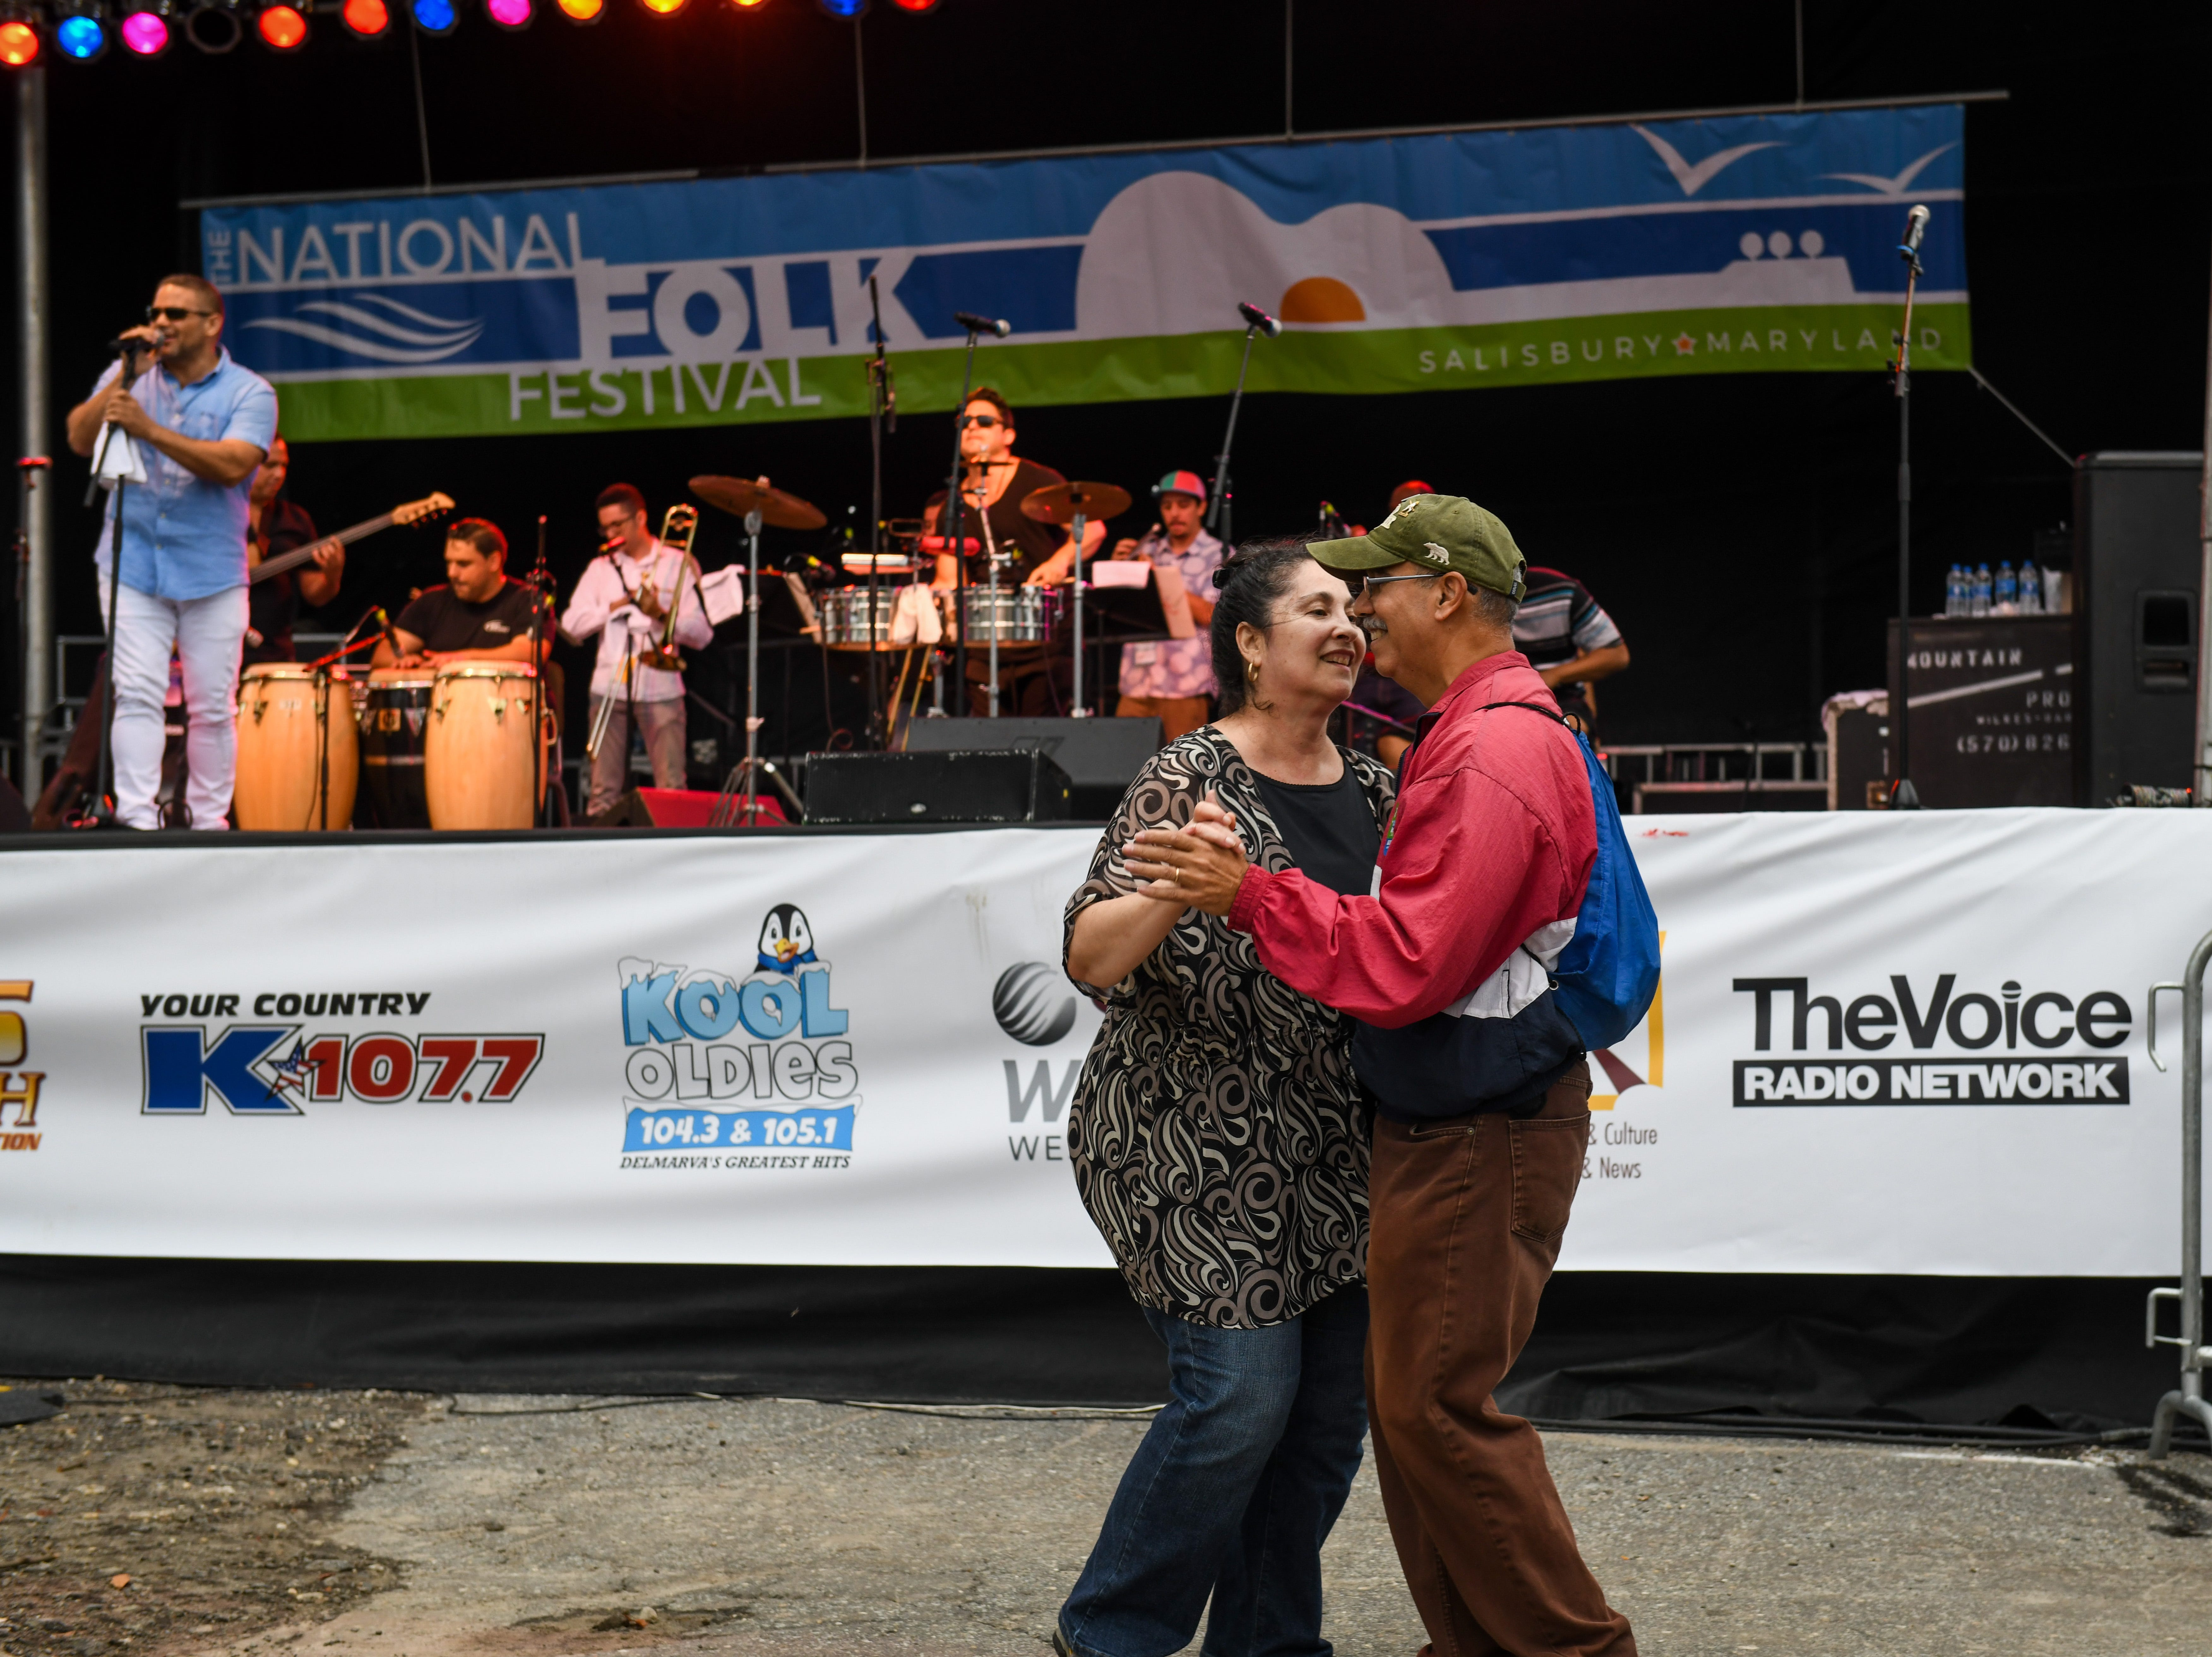 Festival-goers dance to the music of Orquesta SCC at the National Folk Festival in Salisbury on Saturday, Sept. 8.